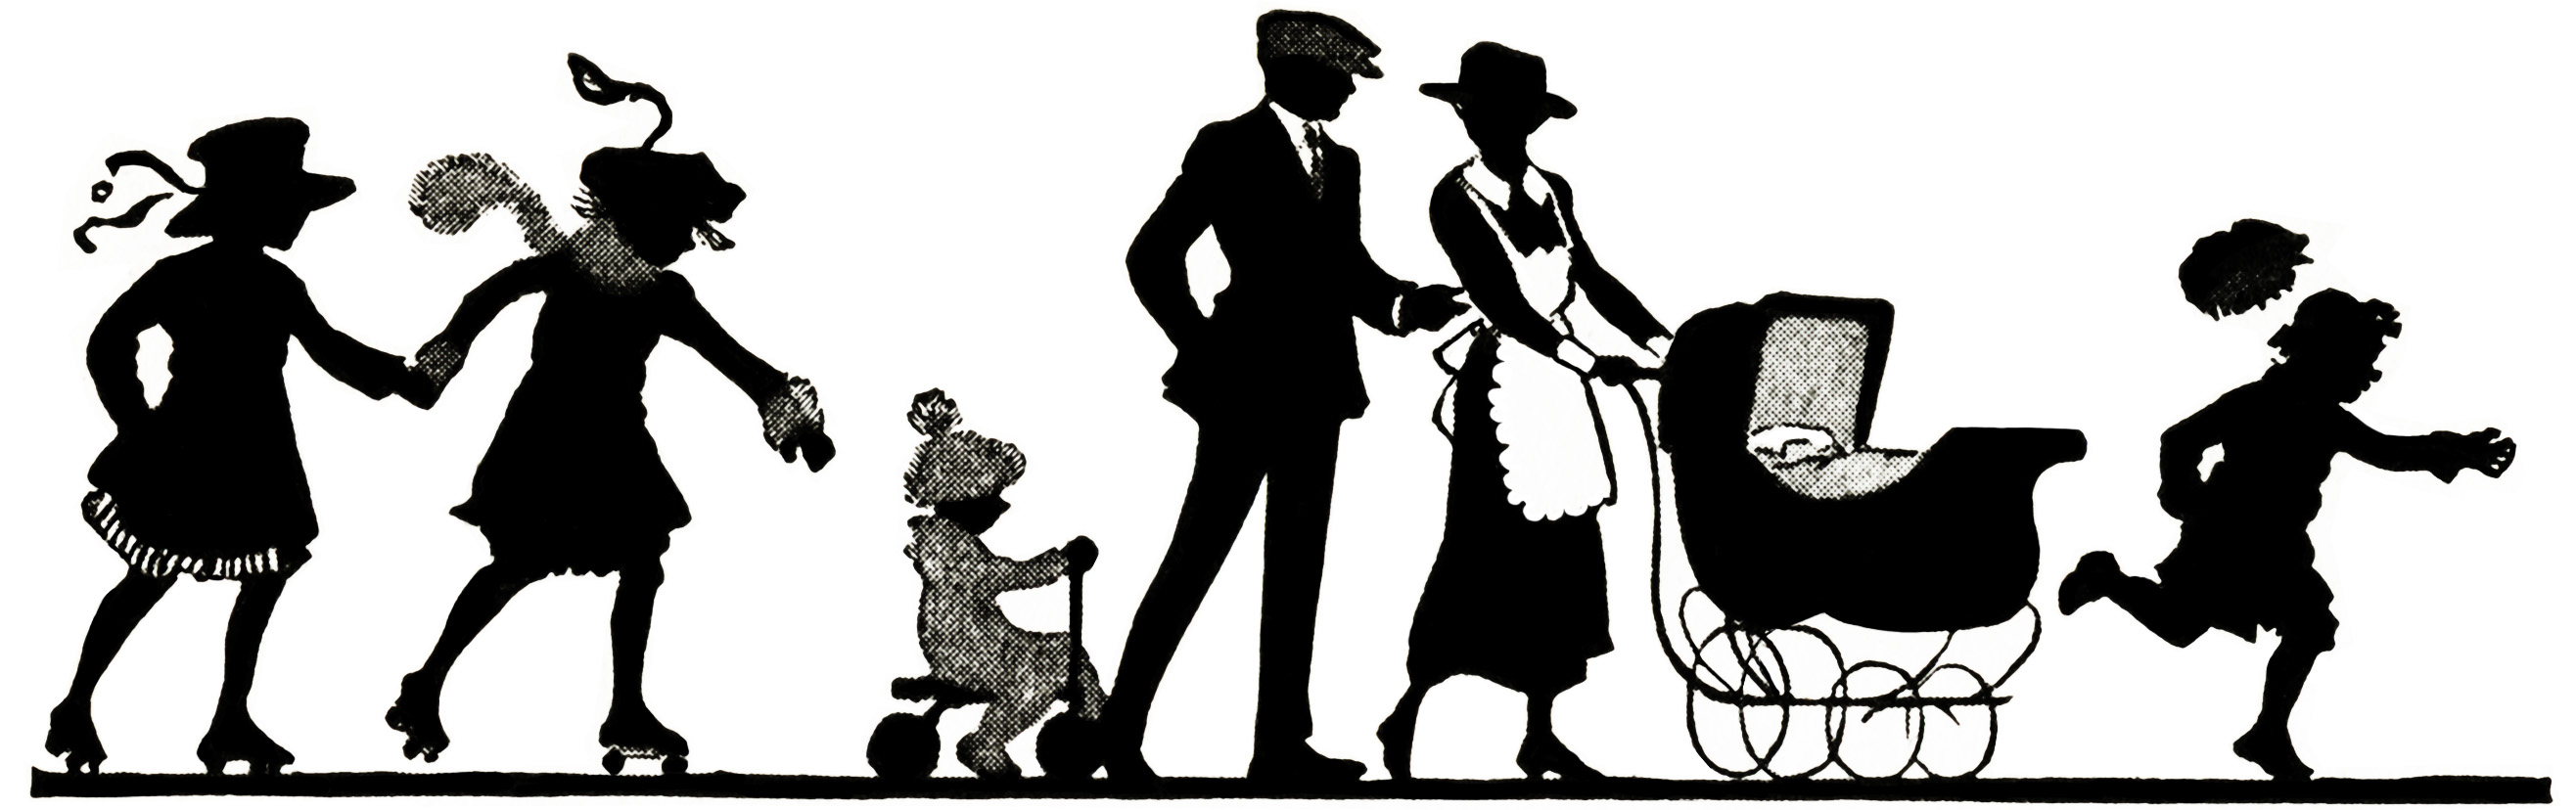 Family Stroll Silhouette